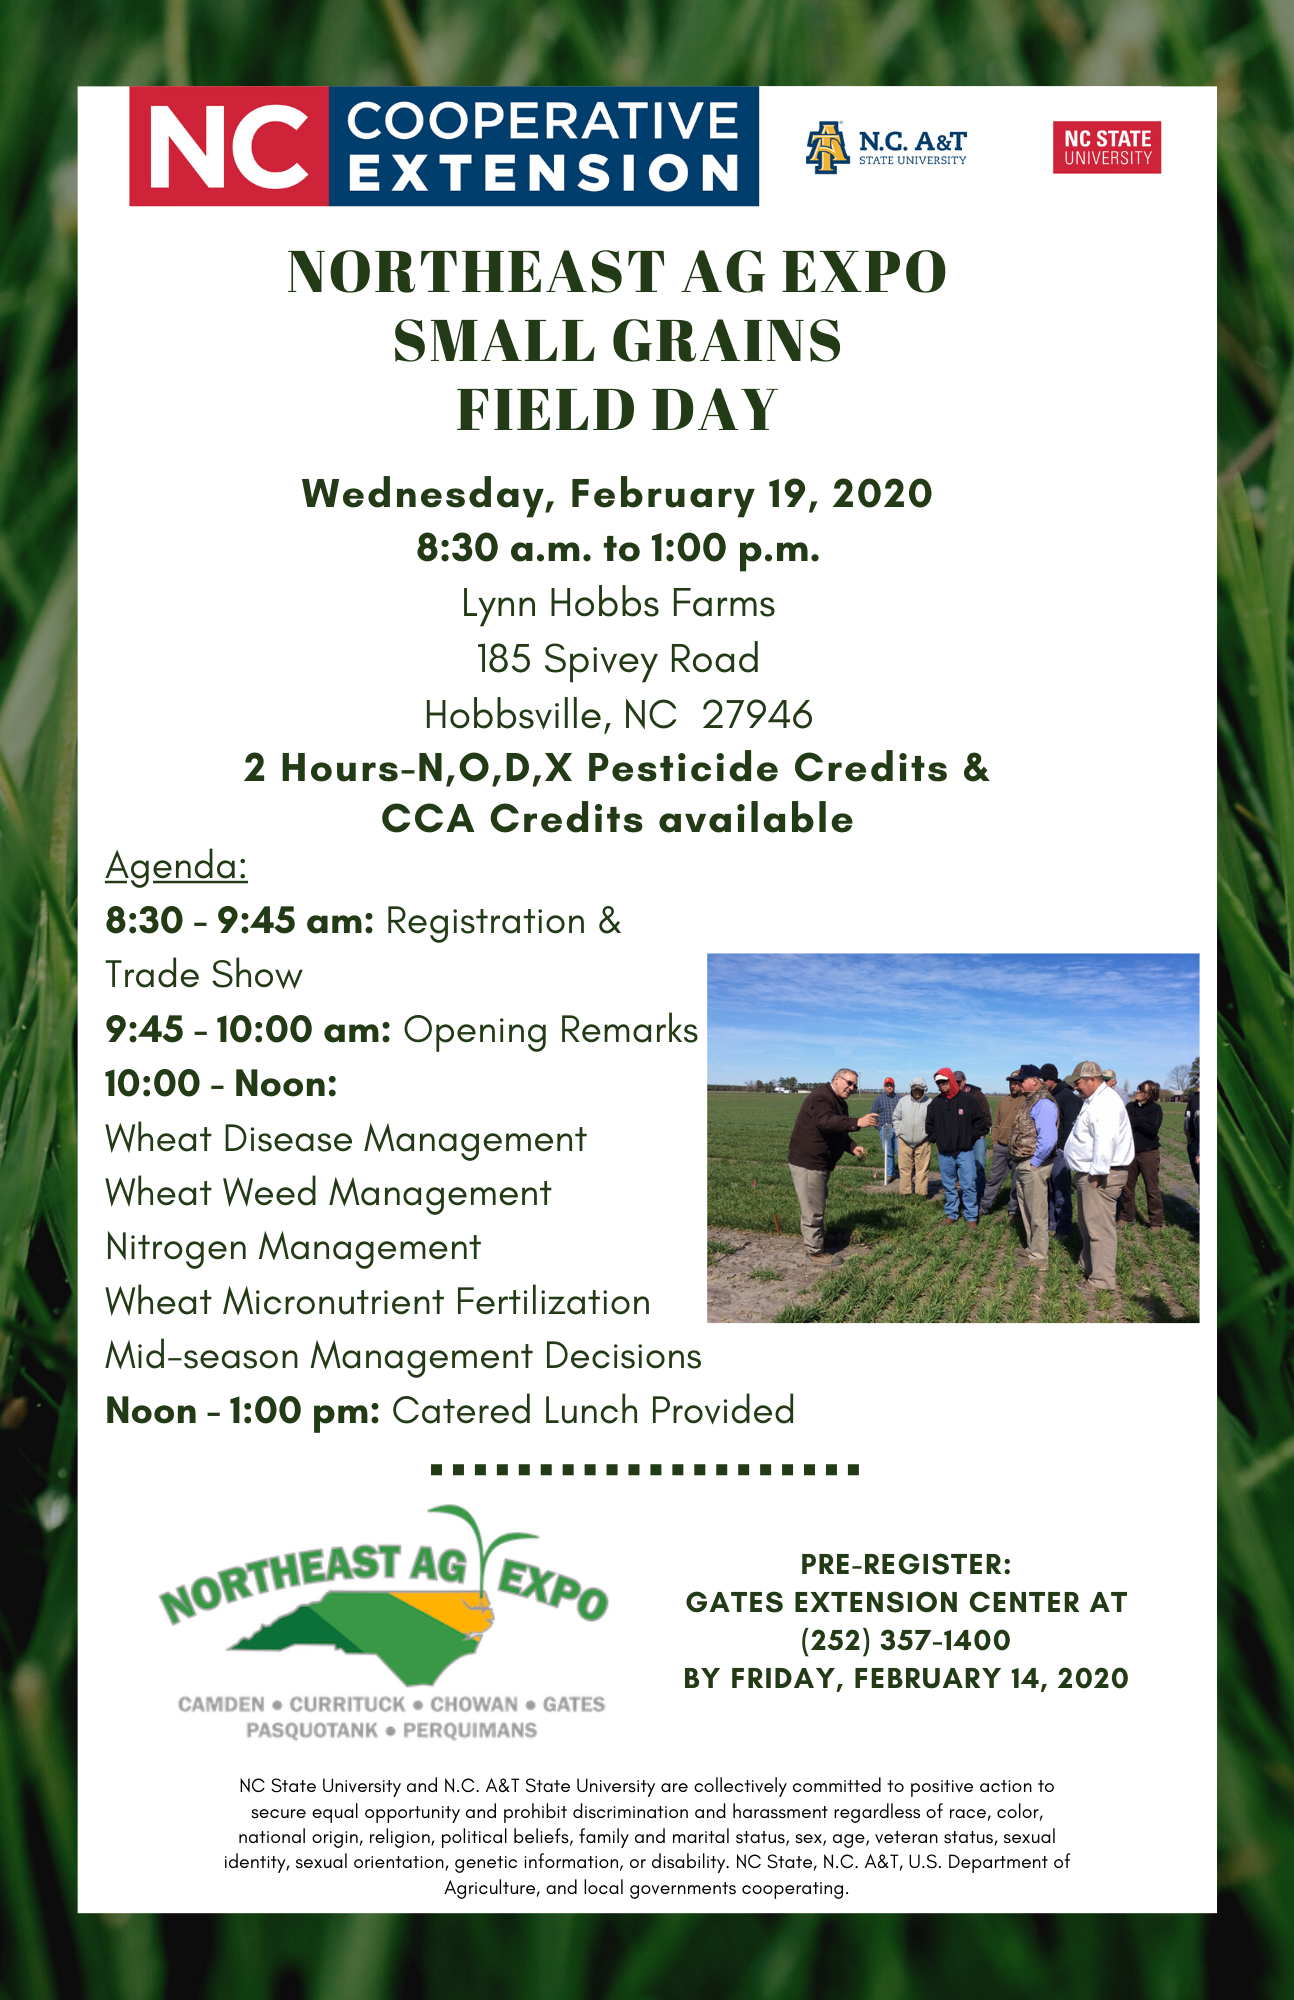 2020 NE Ag Expo Small Grains Field Day poster